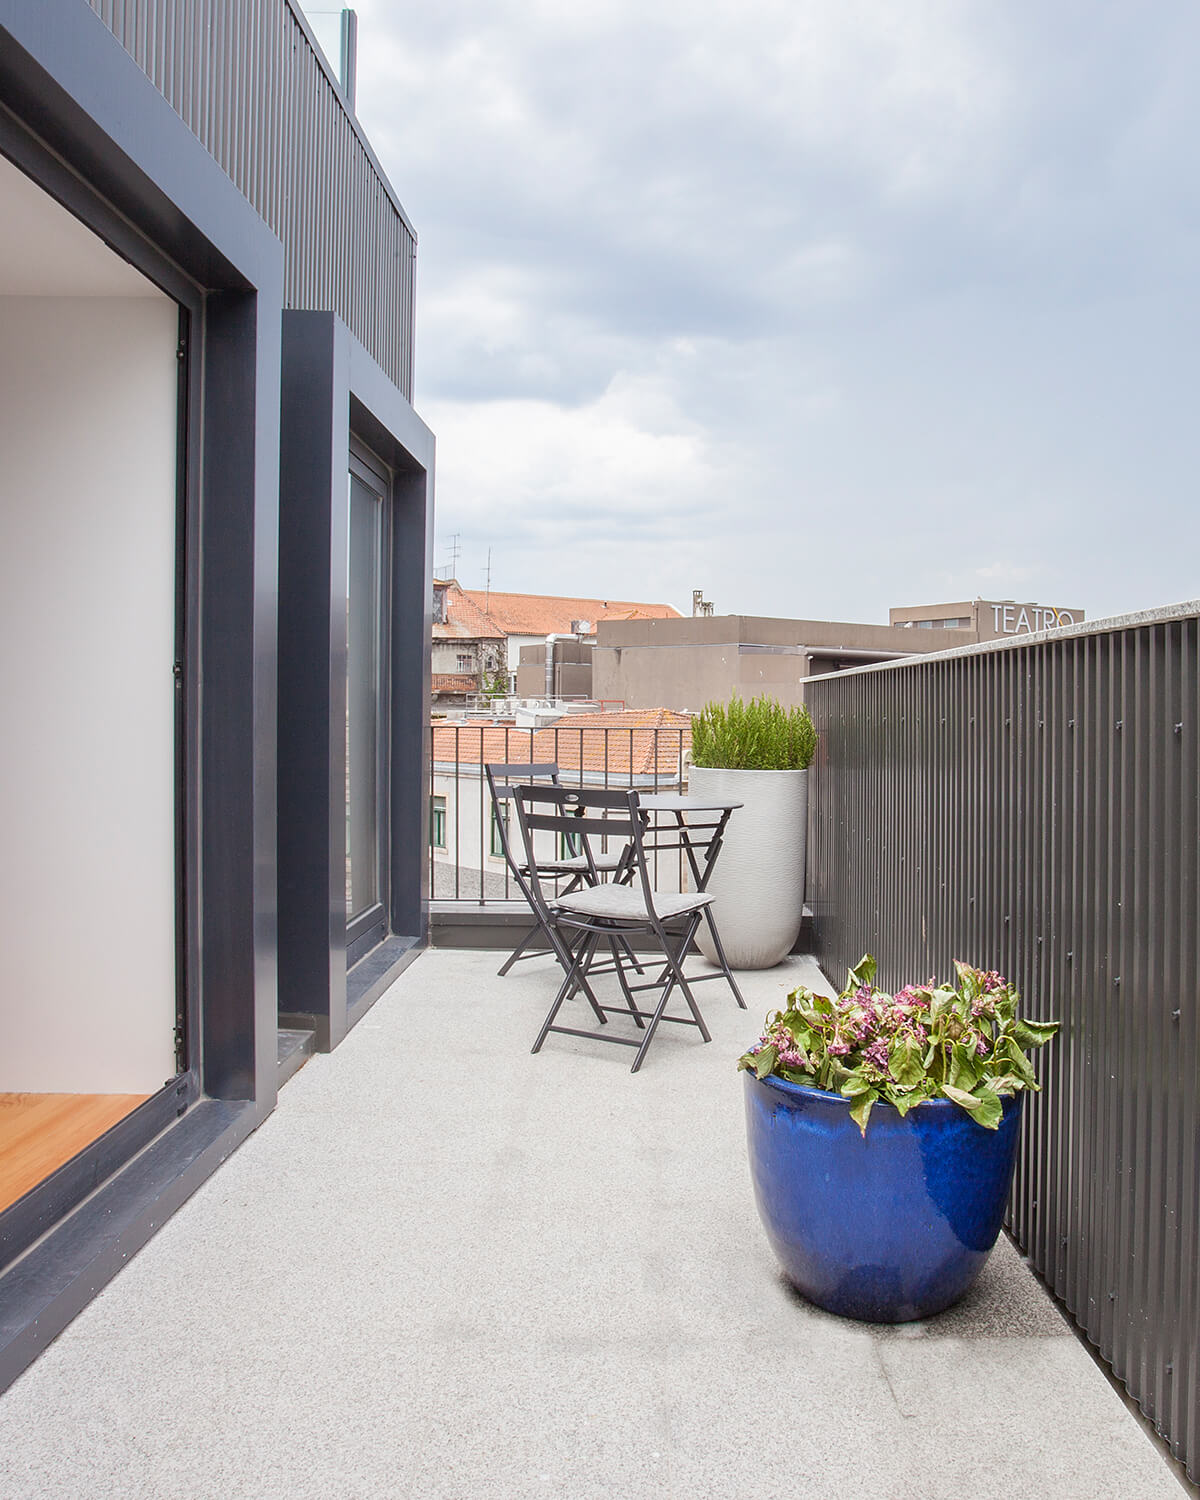 Downtown Luxury Studio - Porto, Portugal | vacation homes for rent